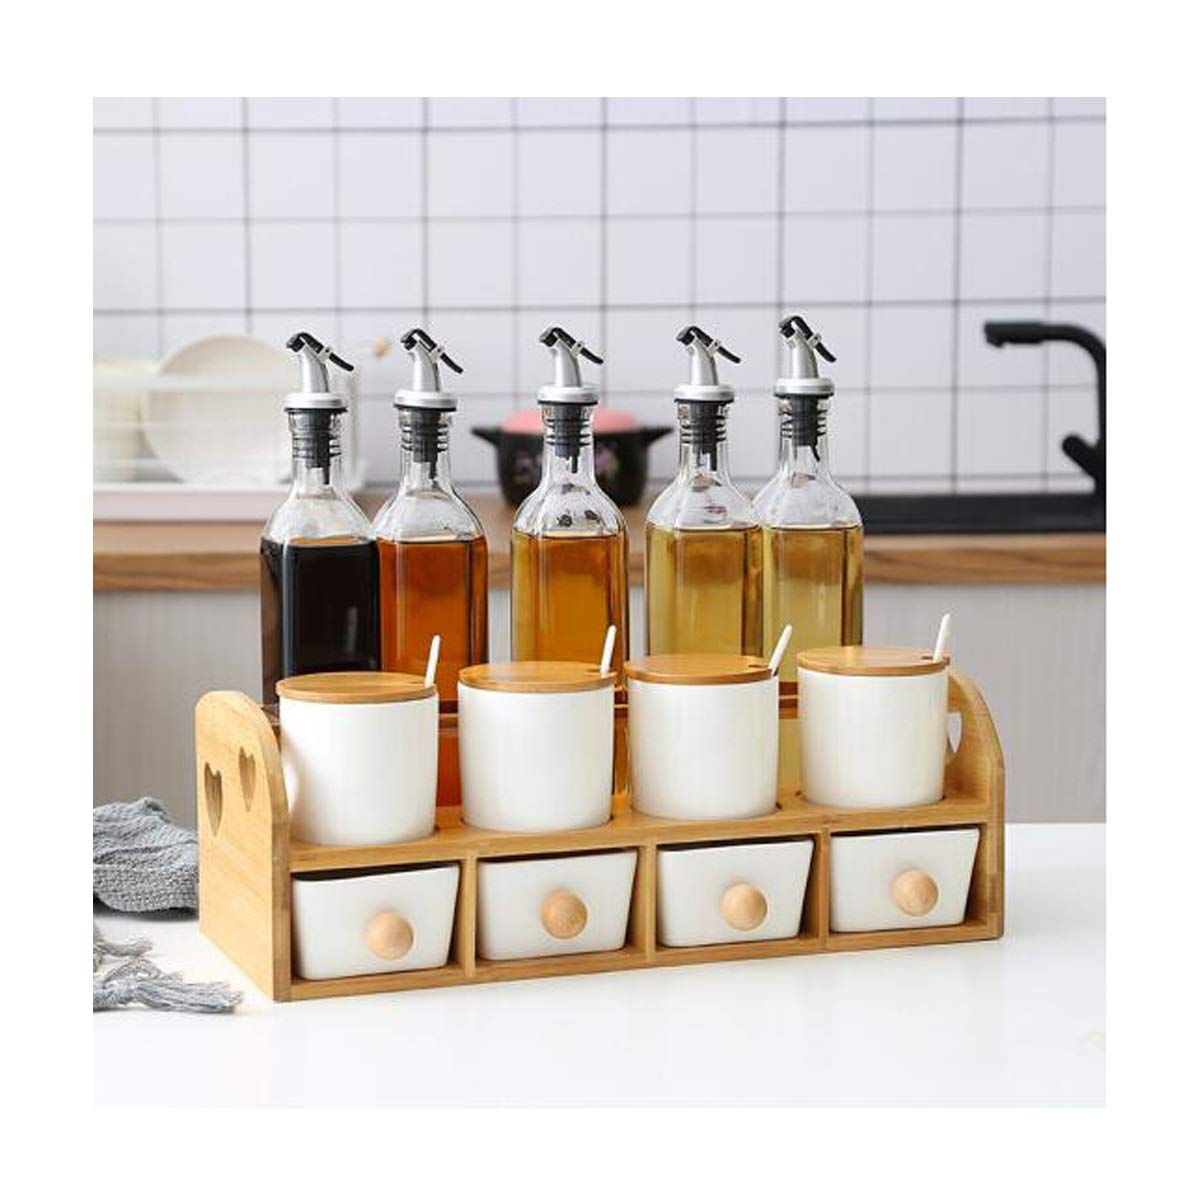 MINGRUIGONGMAO Spice jar set Spice jar ceramic seasoning box salt tank oil bottle combination with shelf kitchen rack storage combination, color style more optional Plush toys (Color : D) by MINGRUIGONGMAO